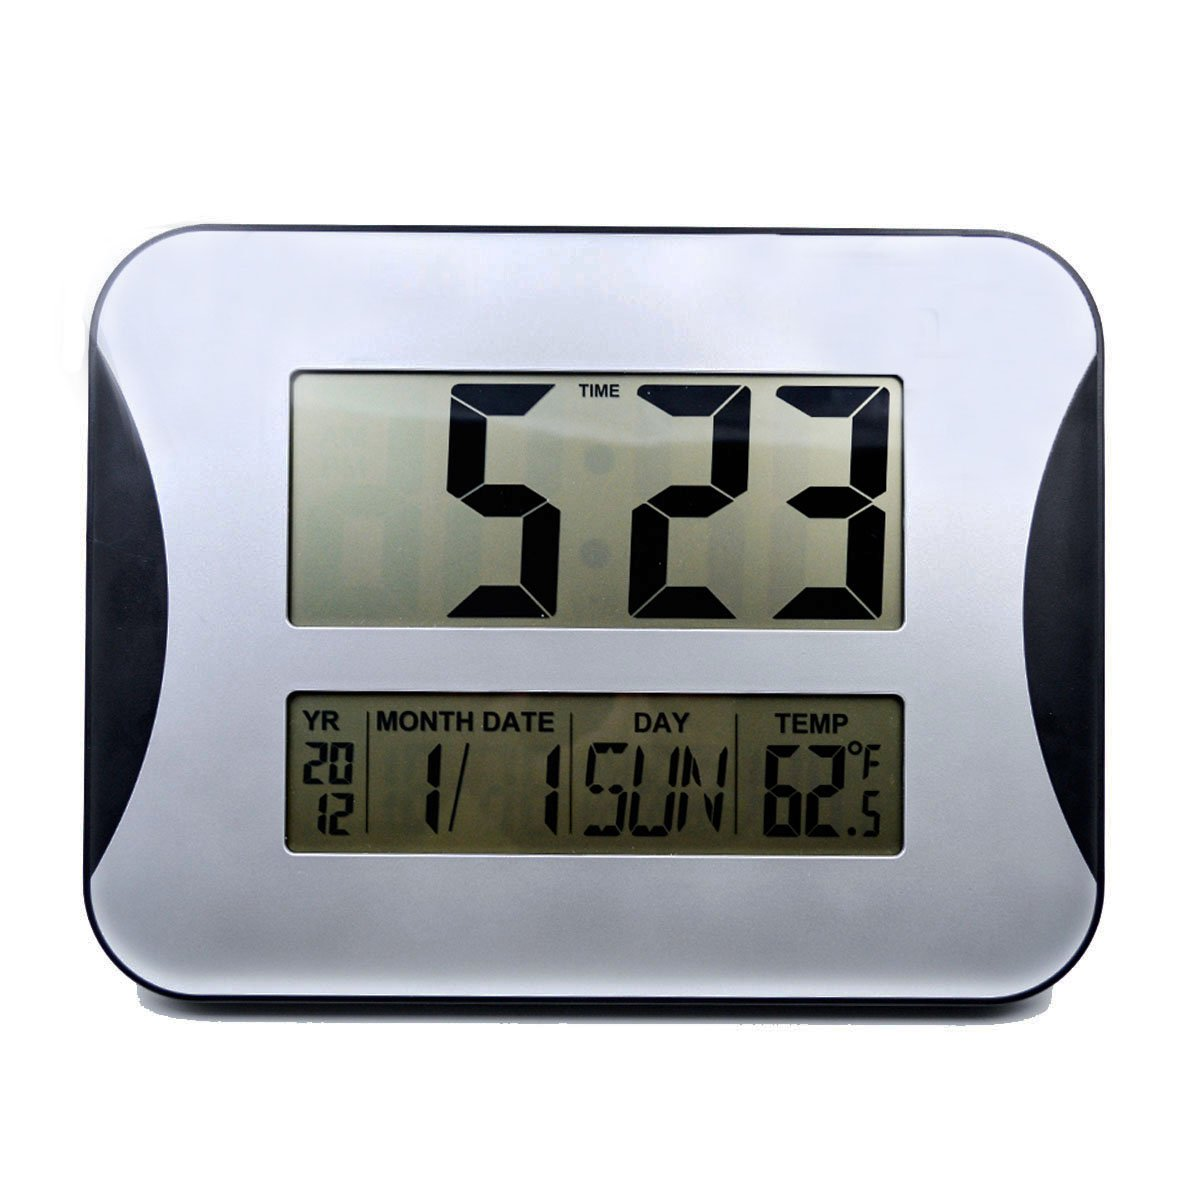 Hippih large lcd digital wall clocks electronic alarm clocks big hippih large lcd digital wall clocks electronic alarm clocks big digits time calendar temperature display wall mountable bedside desk clock for room office amipublicfo Gallery